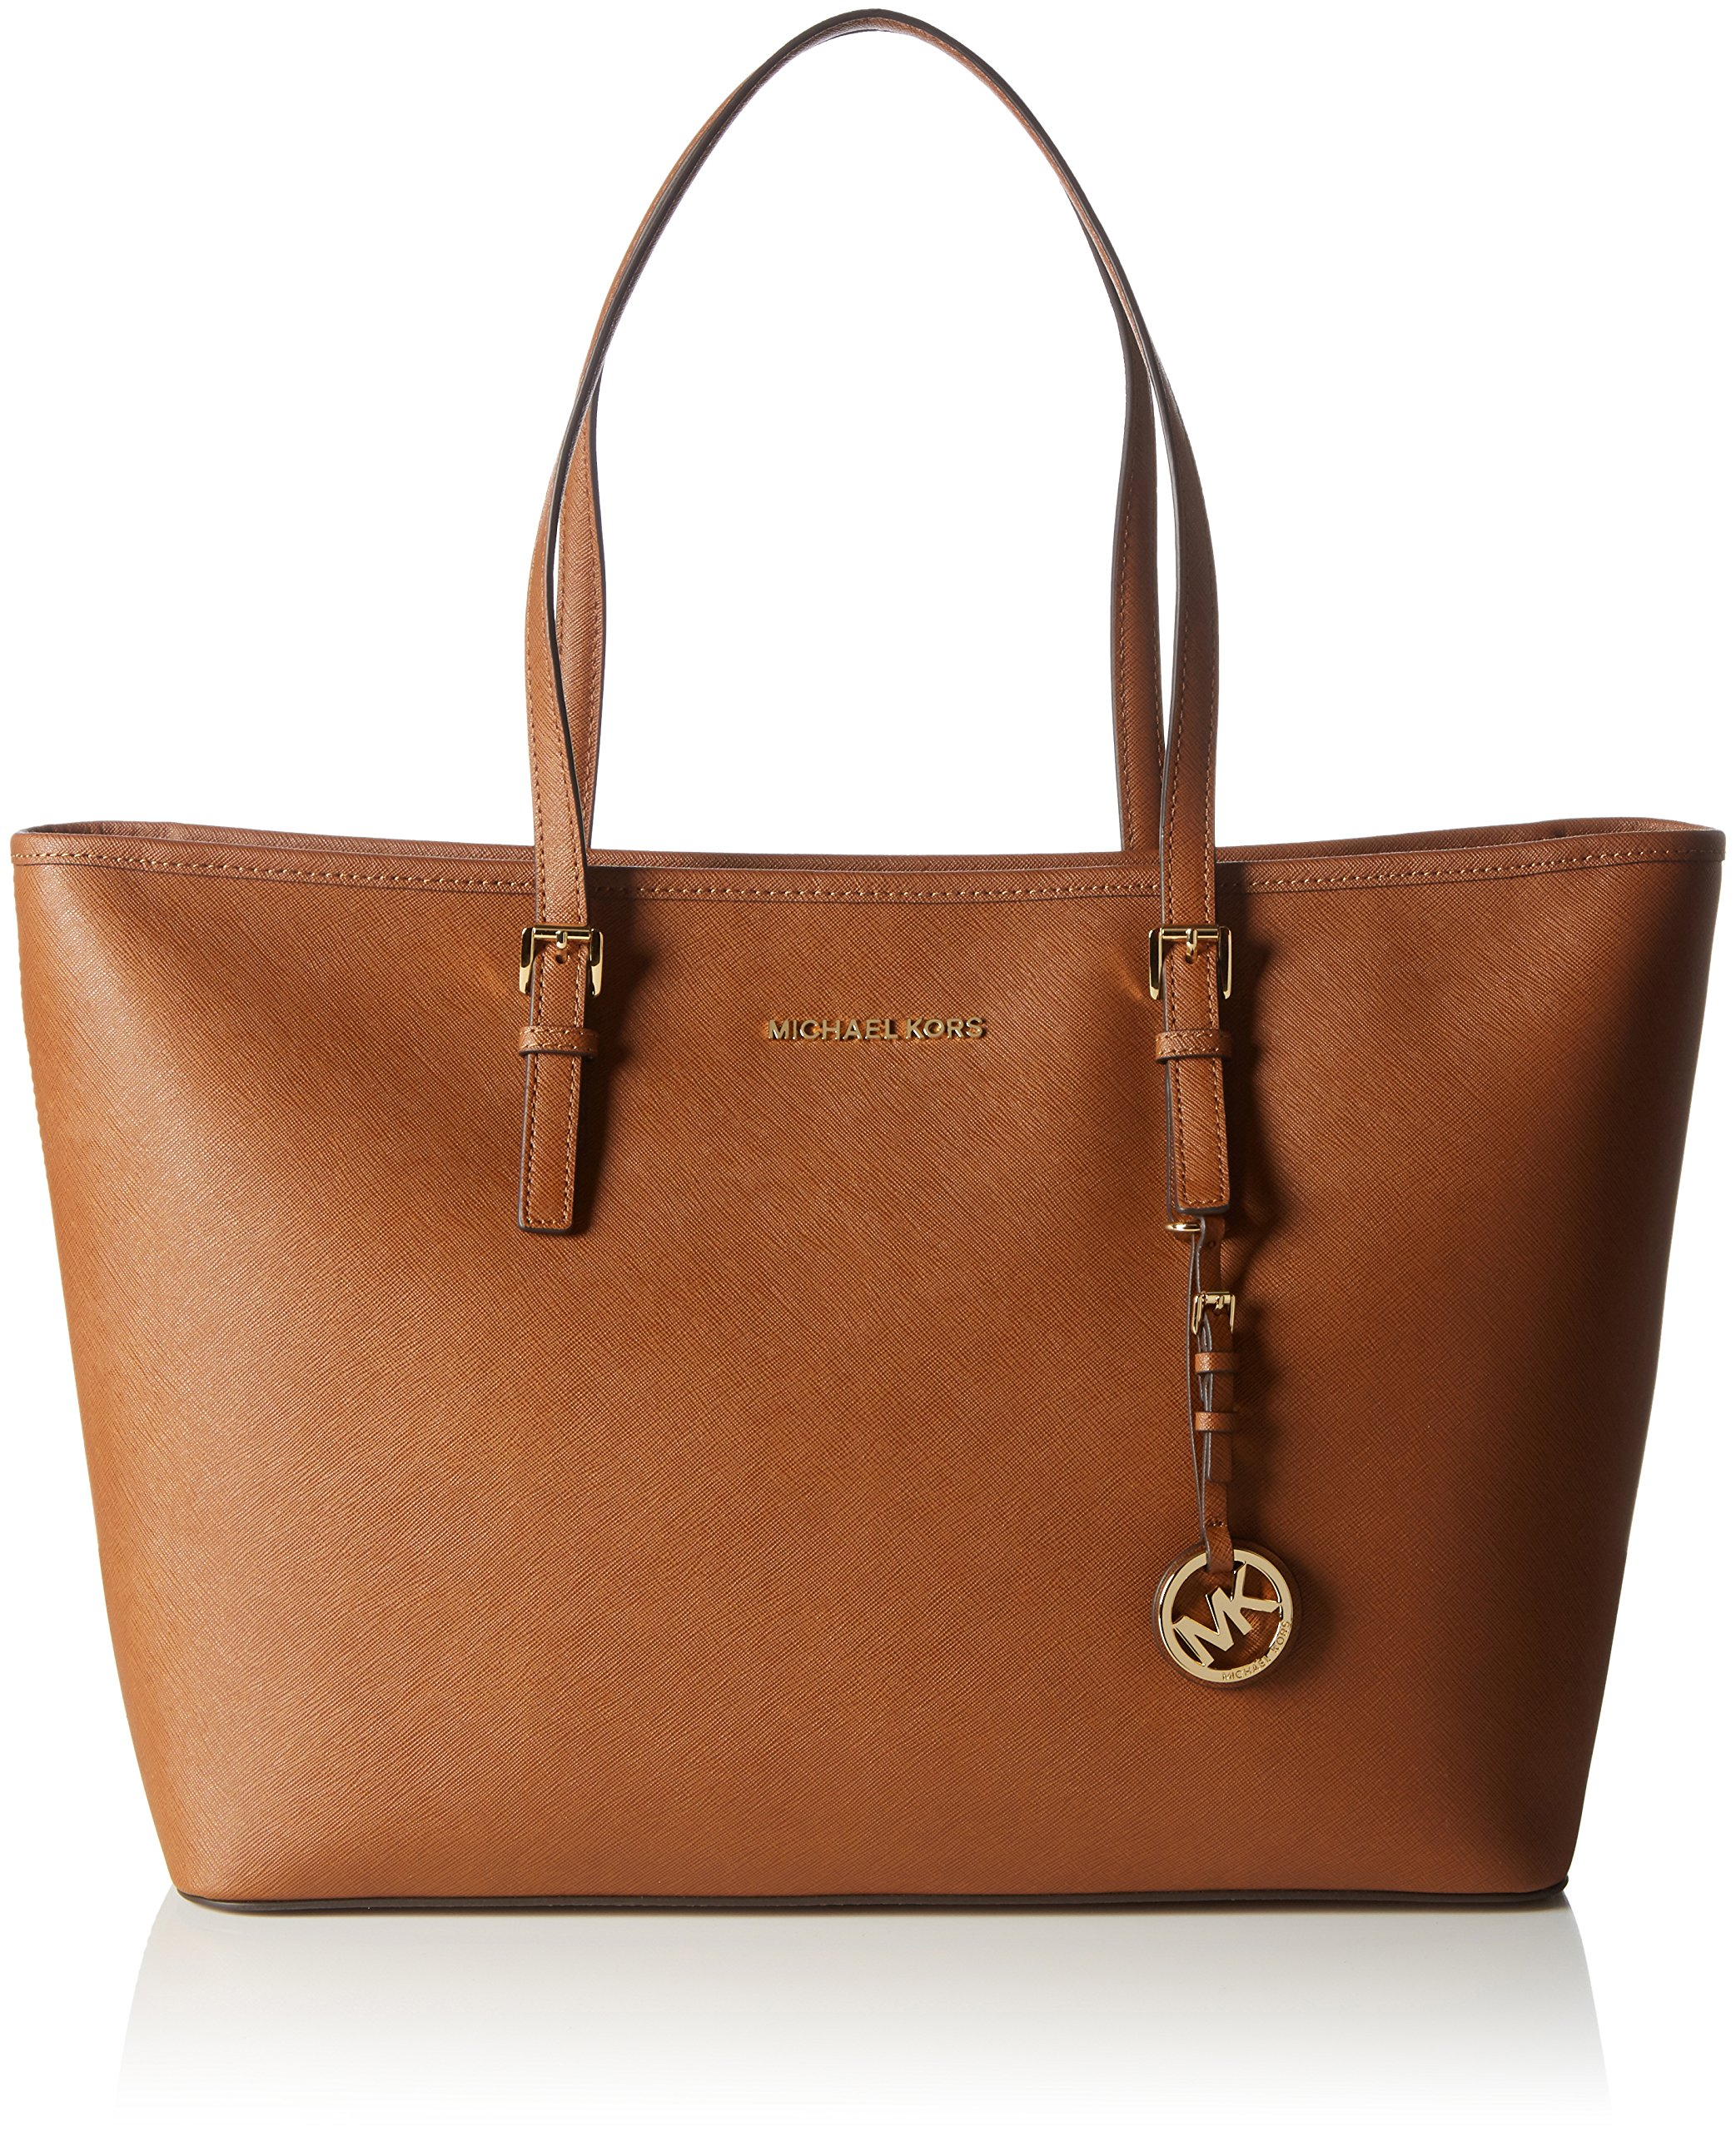 c8762fdce37515 Michael Kors Jet Set Travel Medium Saffiano Leather Top-Zip Tote, michael  kors jet